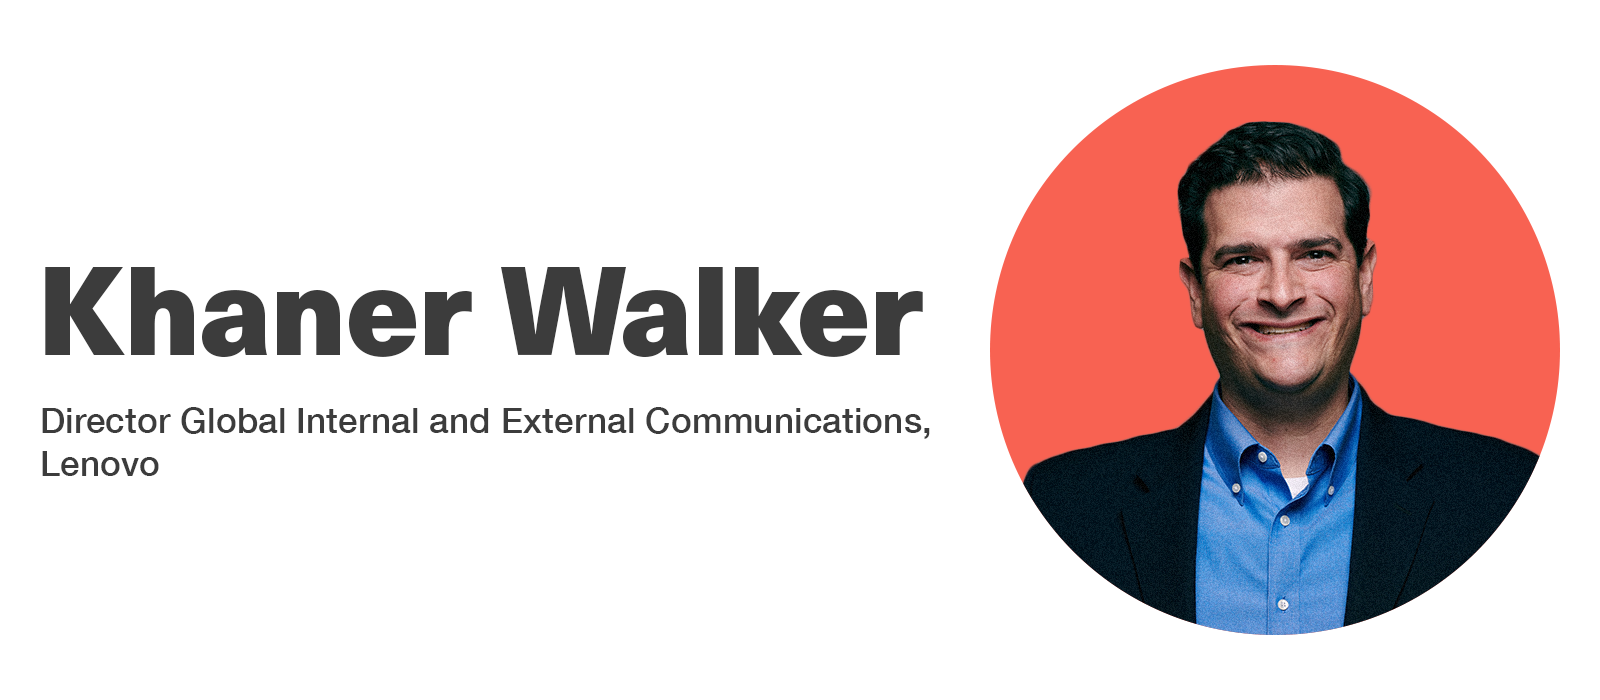 Khaner Walker on the impacts of the pandemic on internal communications